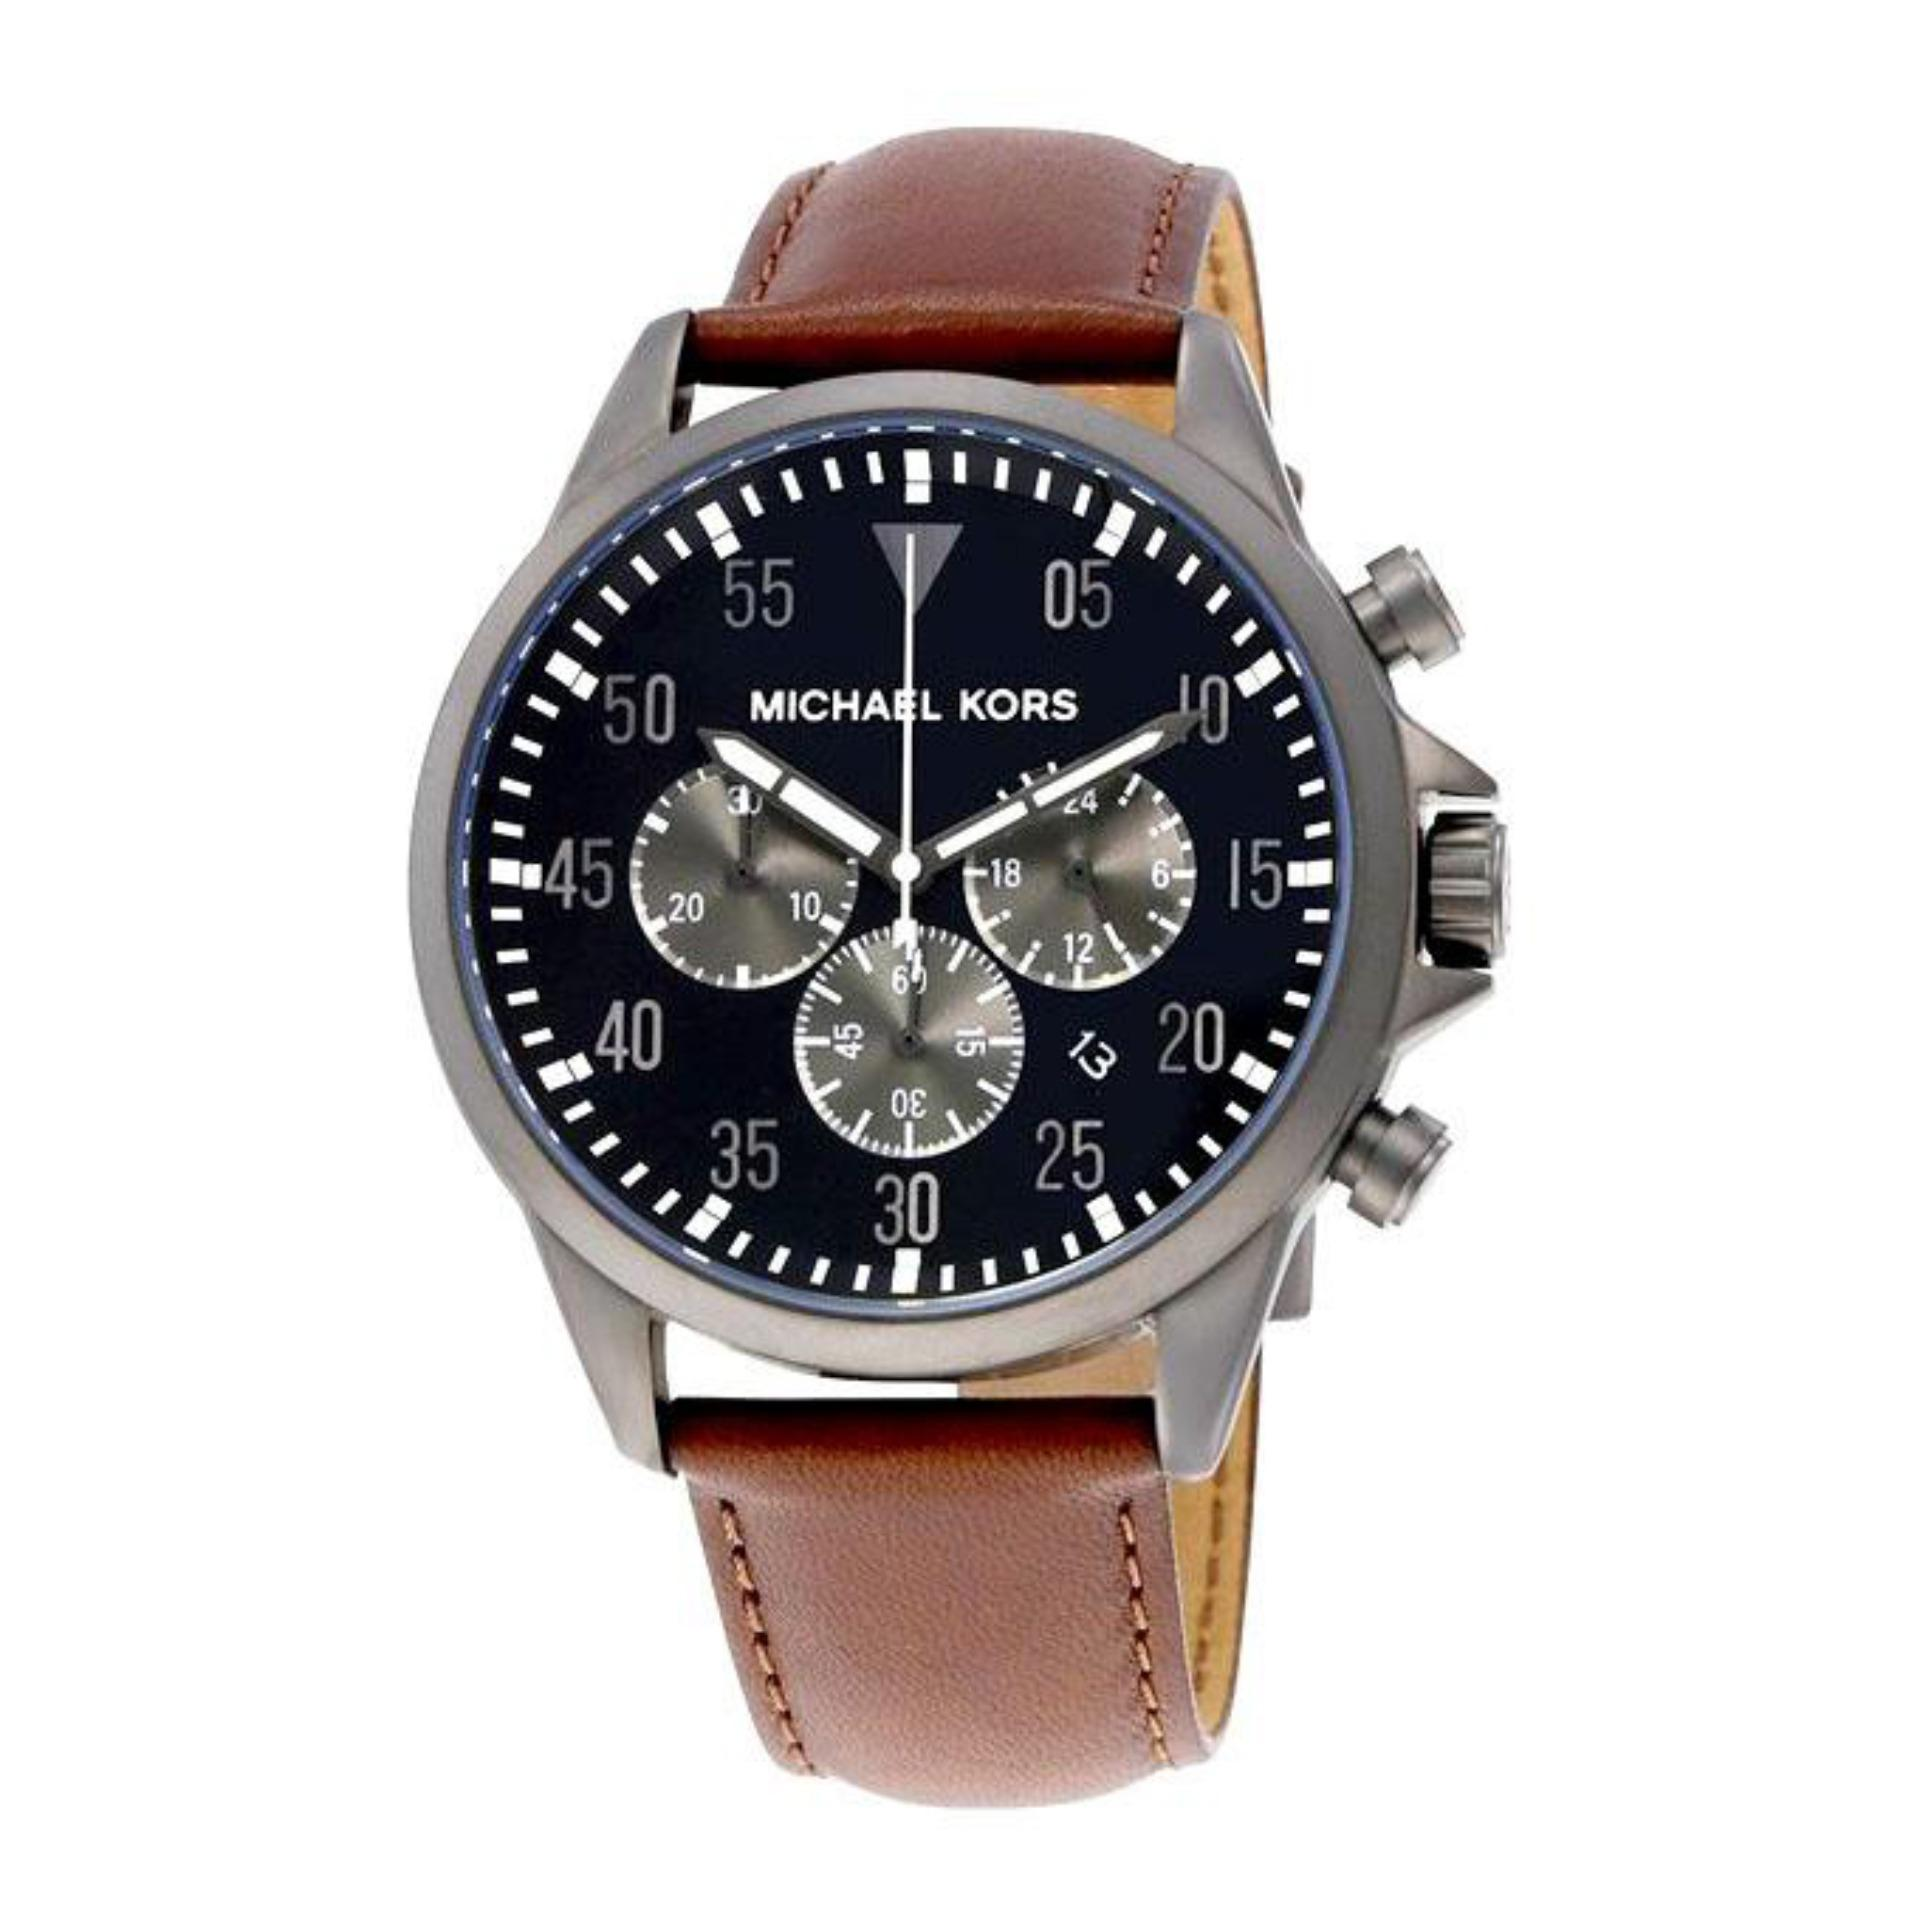 7164c6b49295 Buy Michael Kors Men Fashion Watches at Best Prices Online in ...